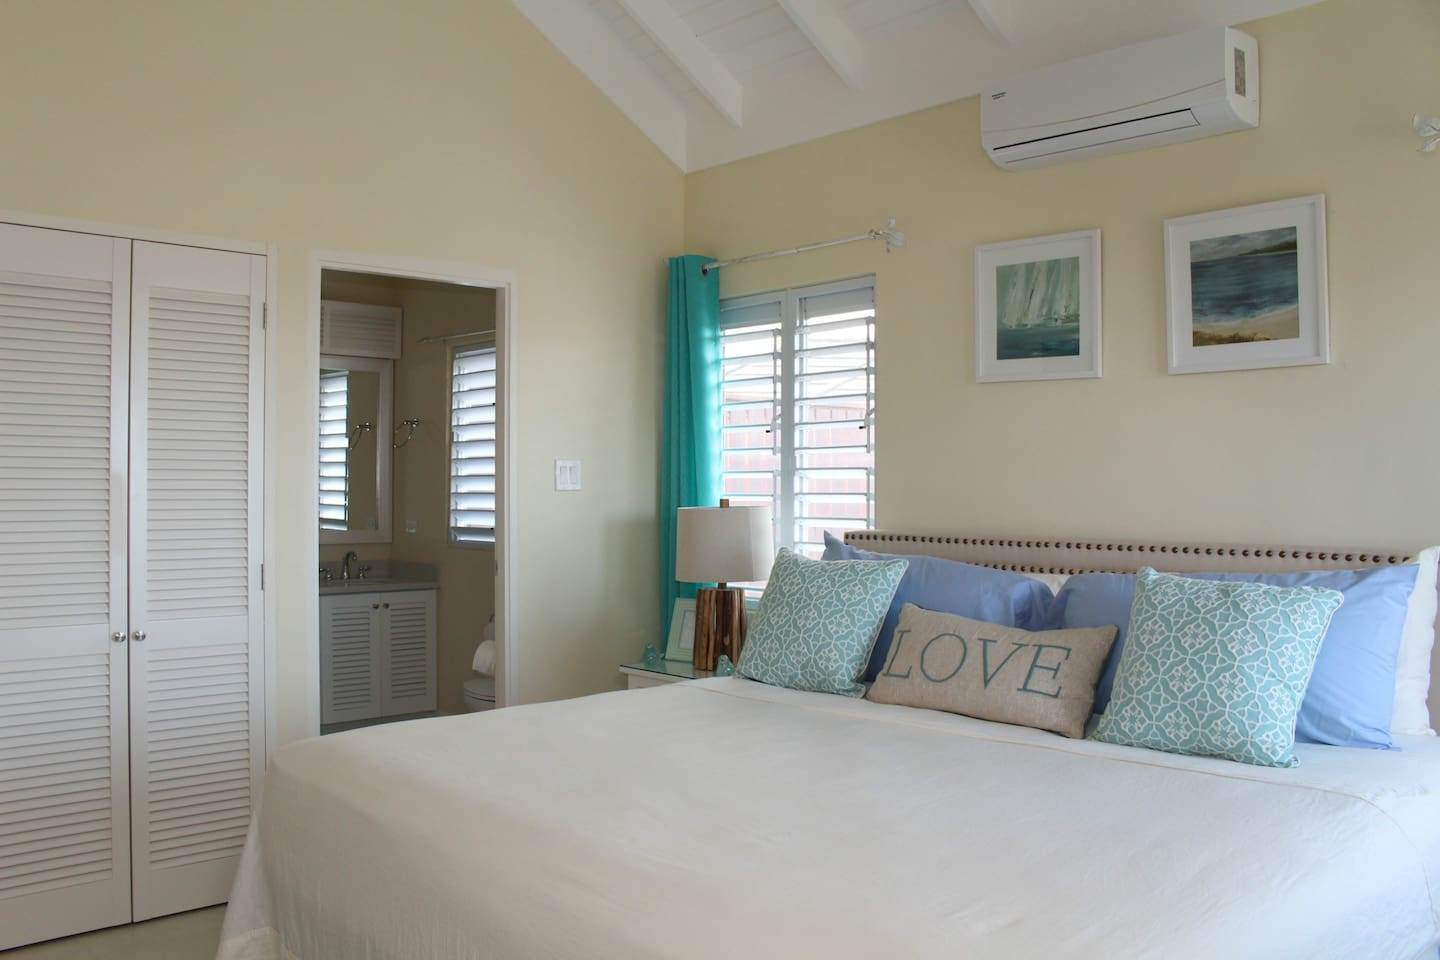 Enjoy this Master bedroom with its own private en suite washroom. Double closet for extra storage space.